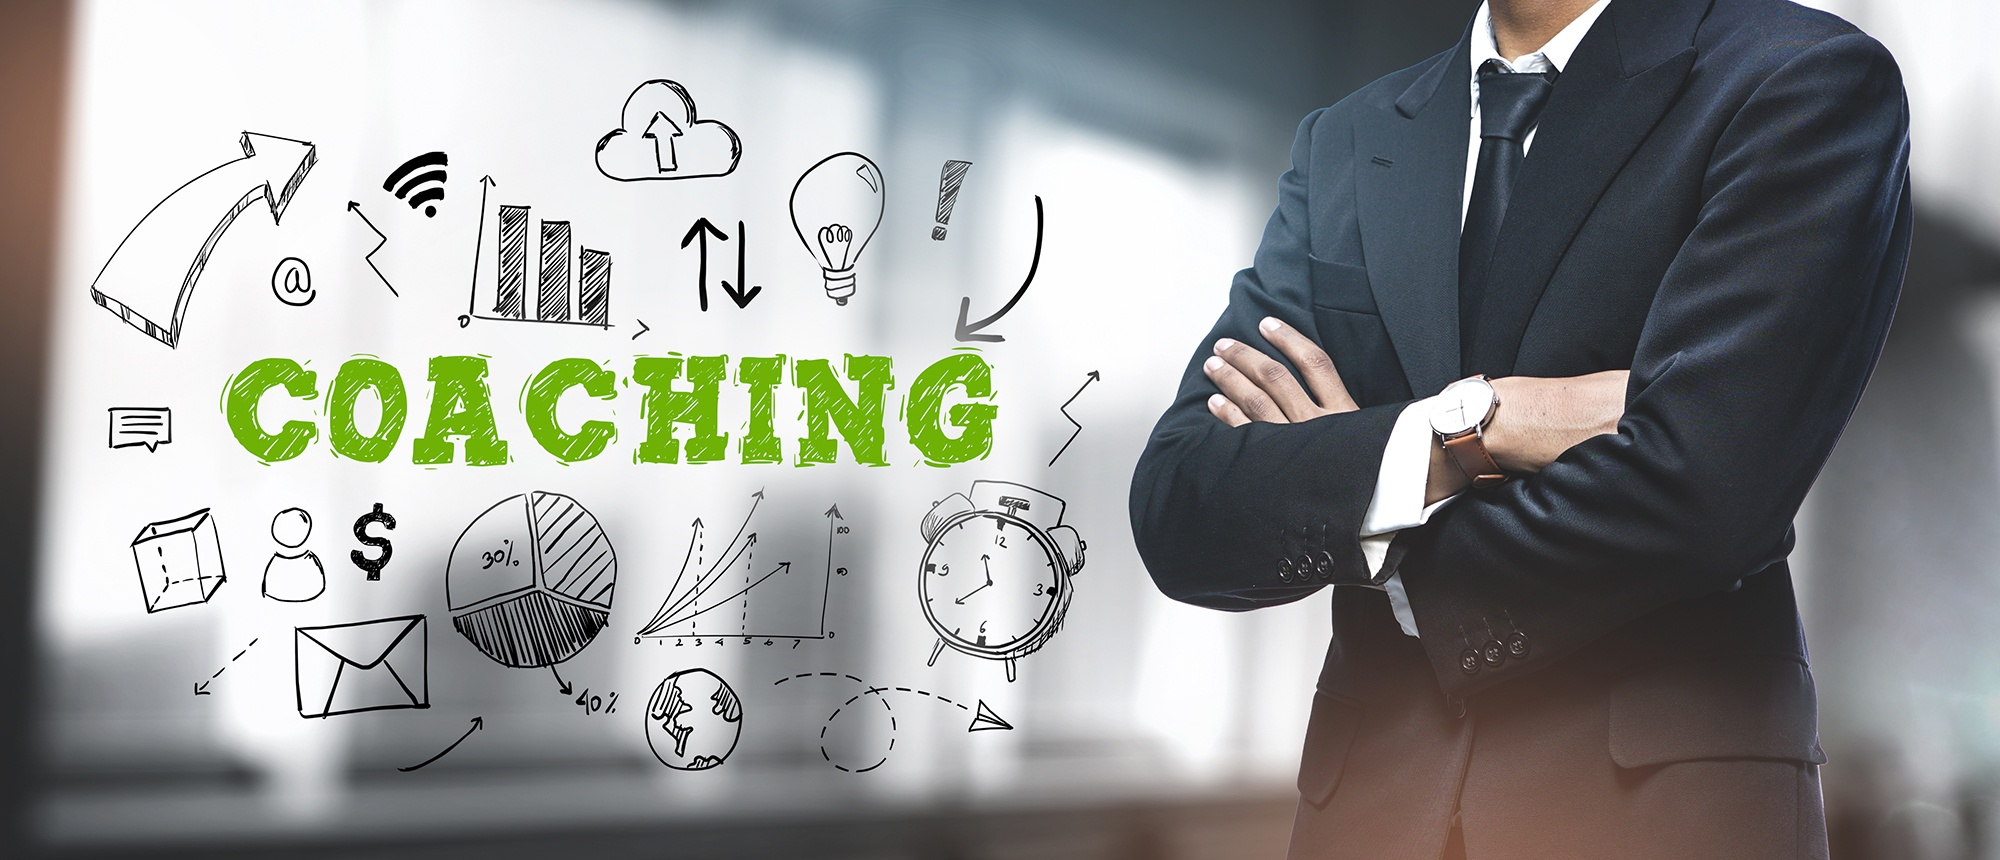 """Asian Businessman on Blurred Office Background. """"Coaching"""" Sketch Concept represents a background for Individual Coaching Connected Minds Enterprise"""